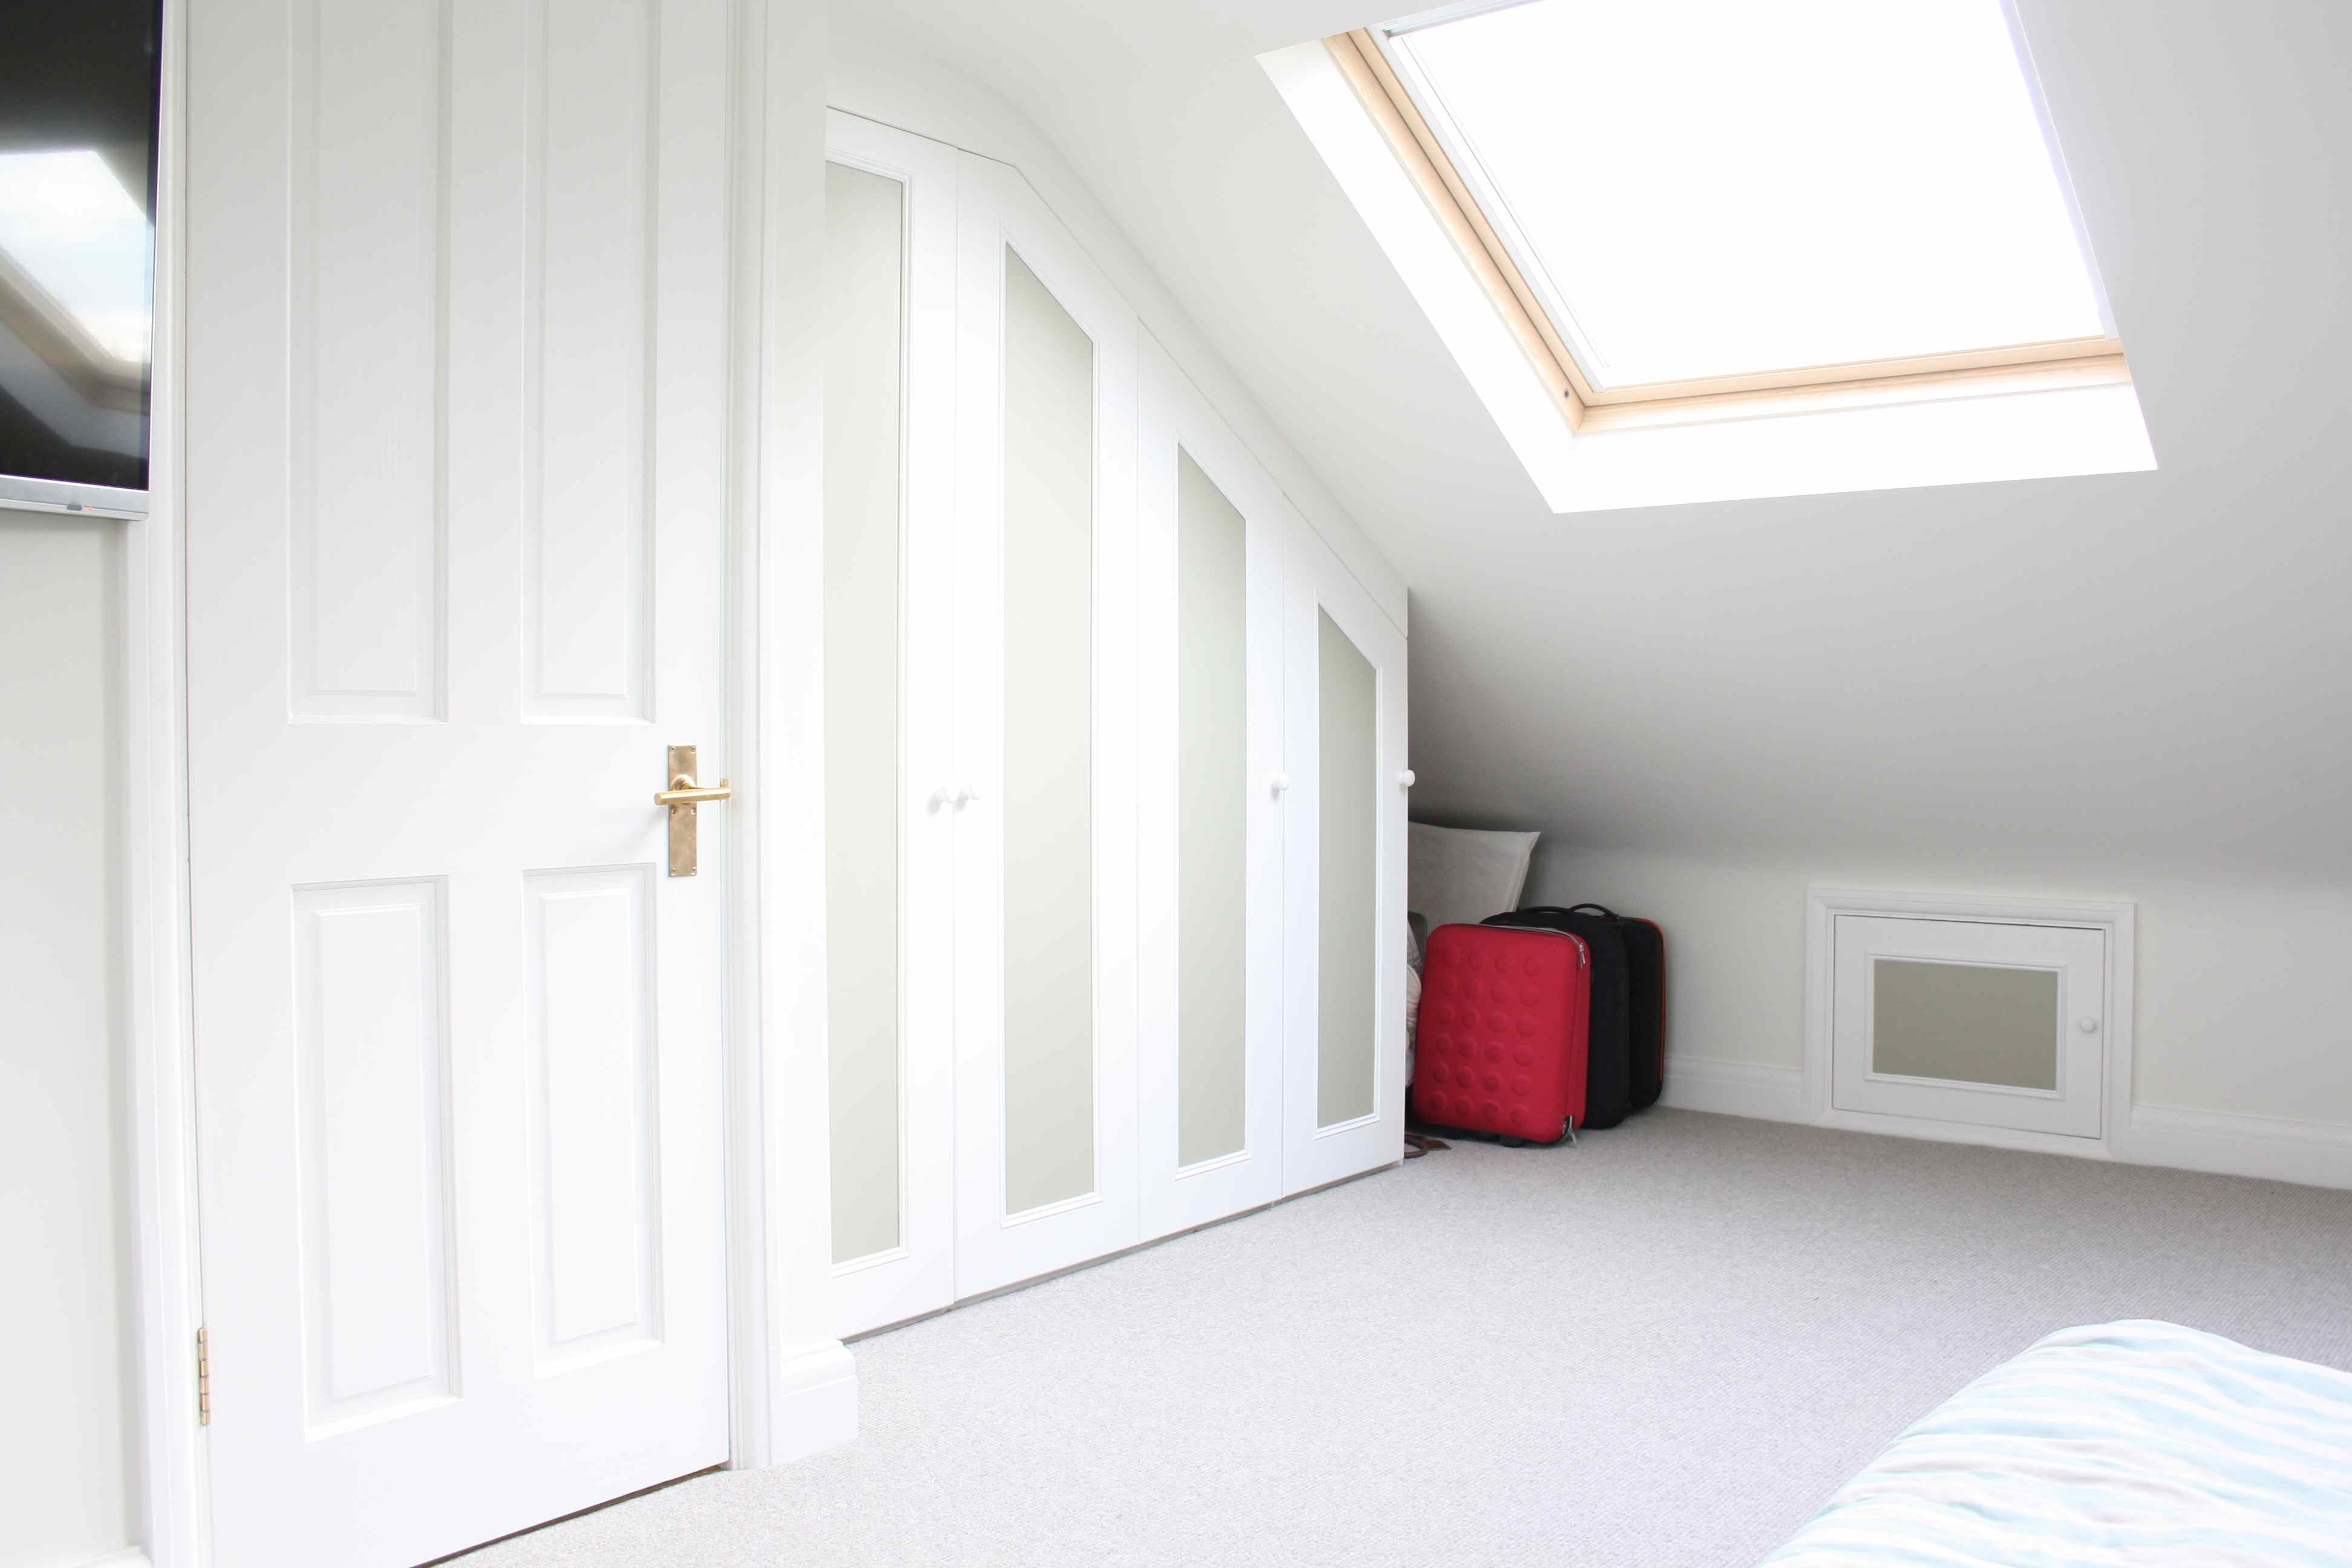 Latest news from our loft conversion blog